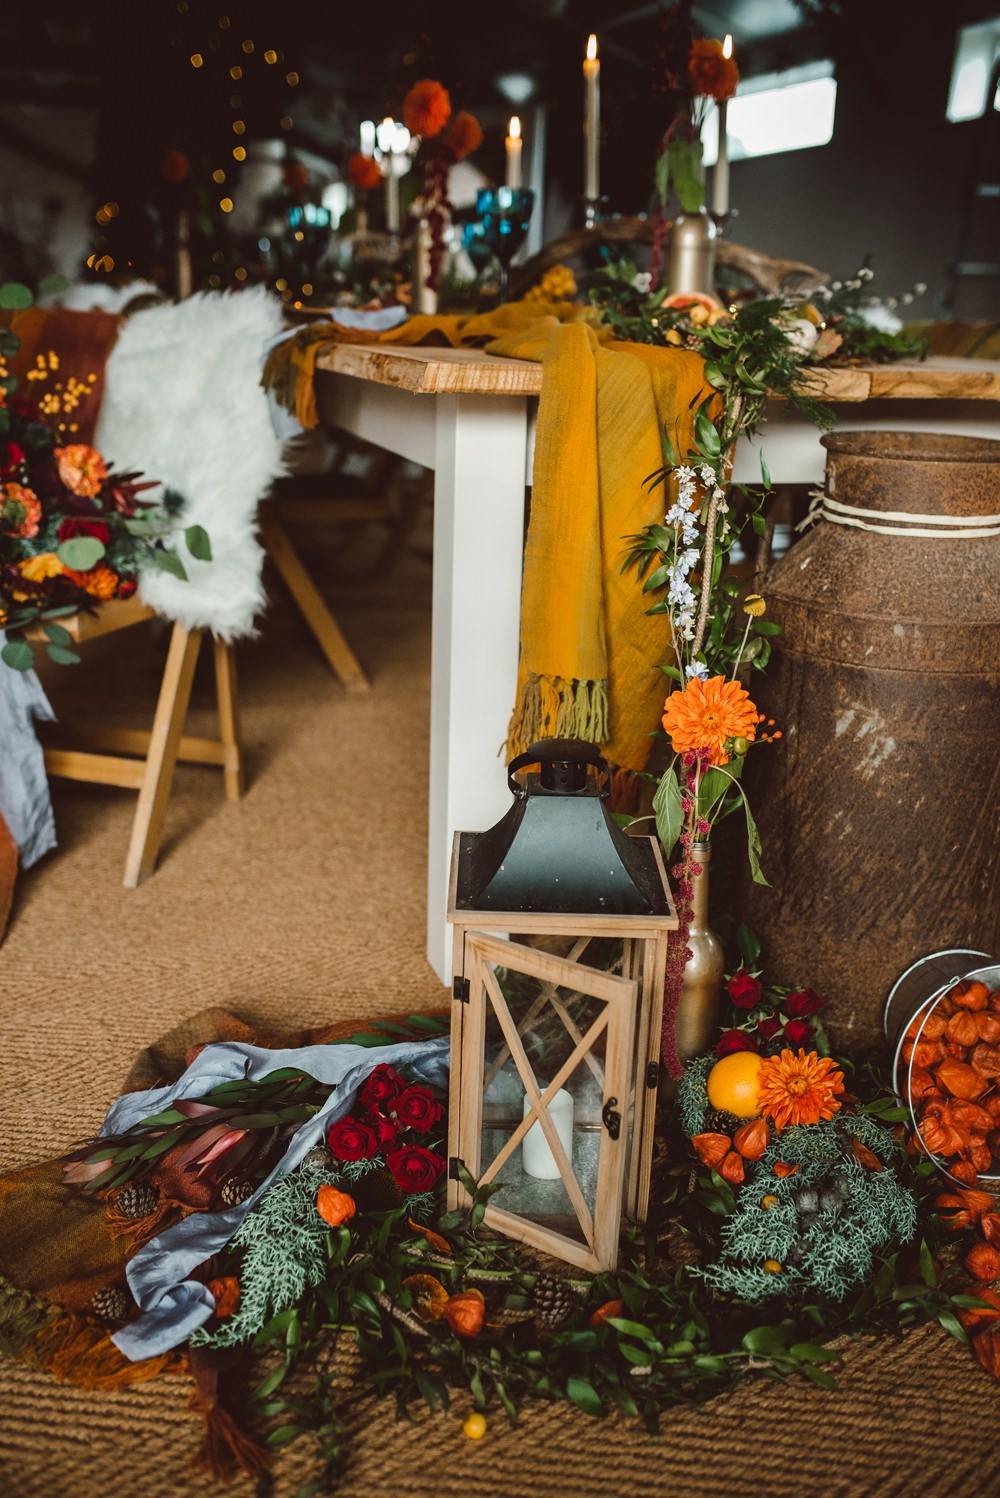 Tablescape Deor Flowers Bottles Fruit Candles Antlers Table Candle Floor Rustic Christmas Wedding Ideas Dhw Photography